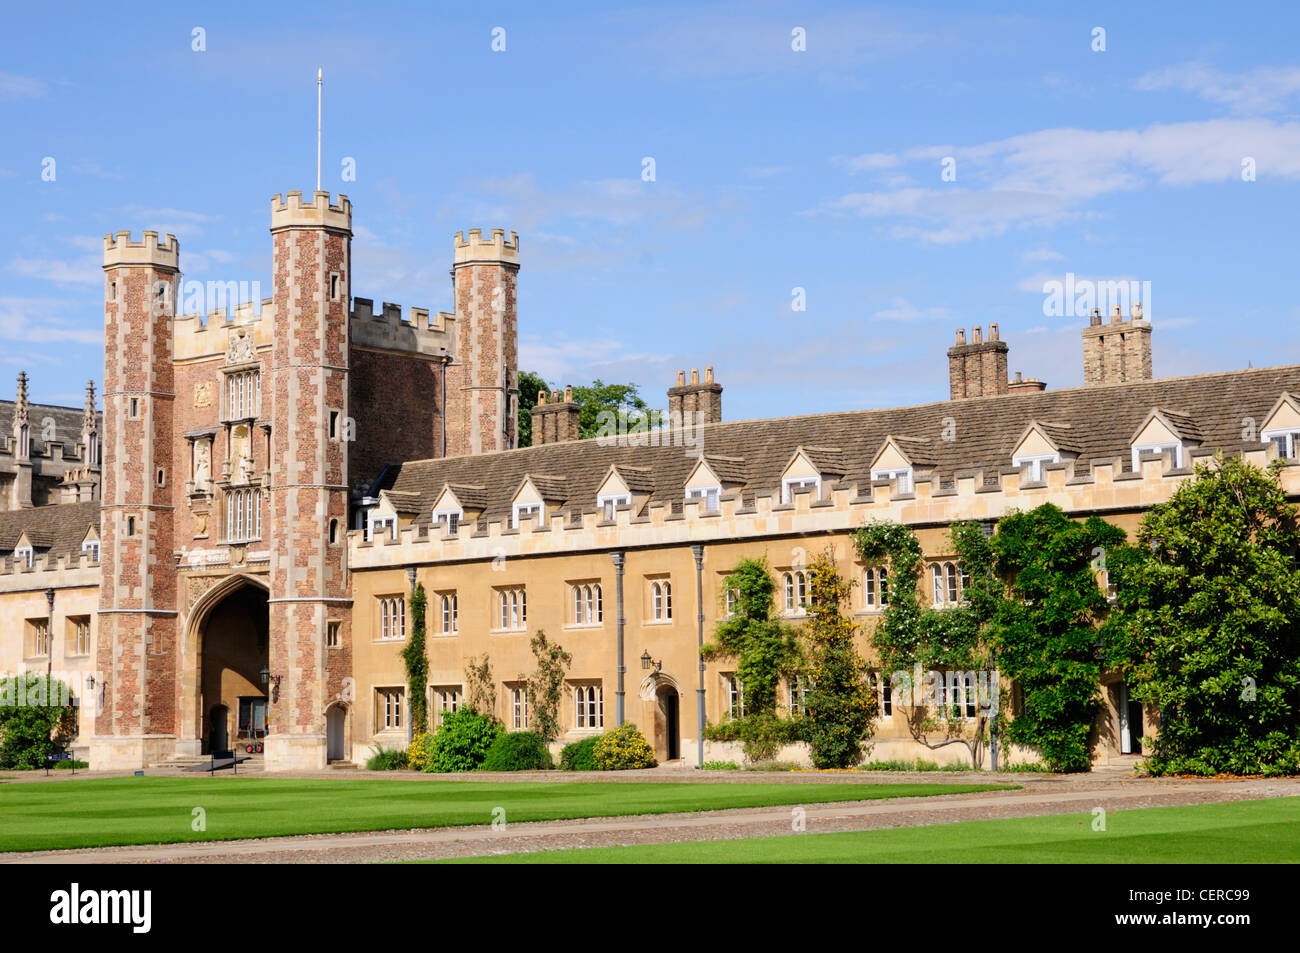 The Great Gate and Court of Trinity College, a constituent college of the University of Cambridge. Stock Photo